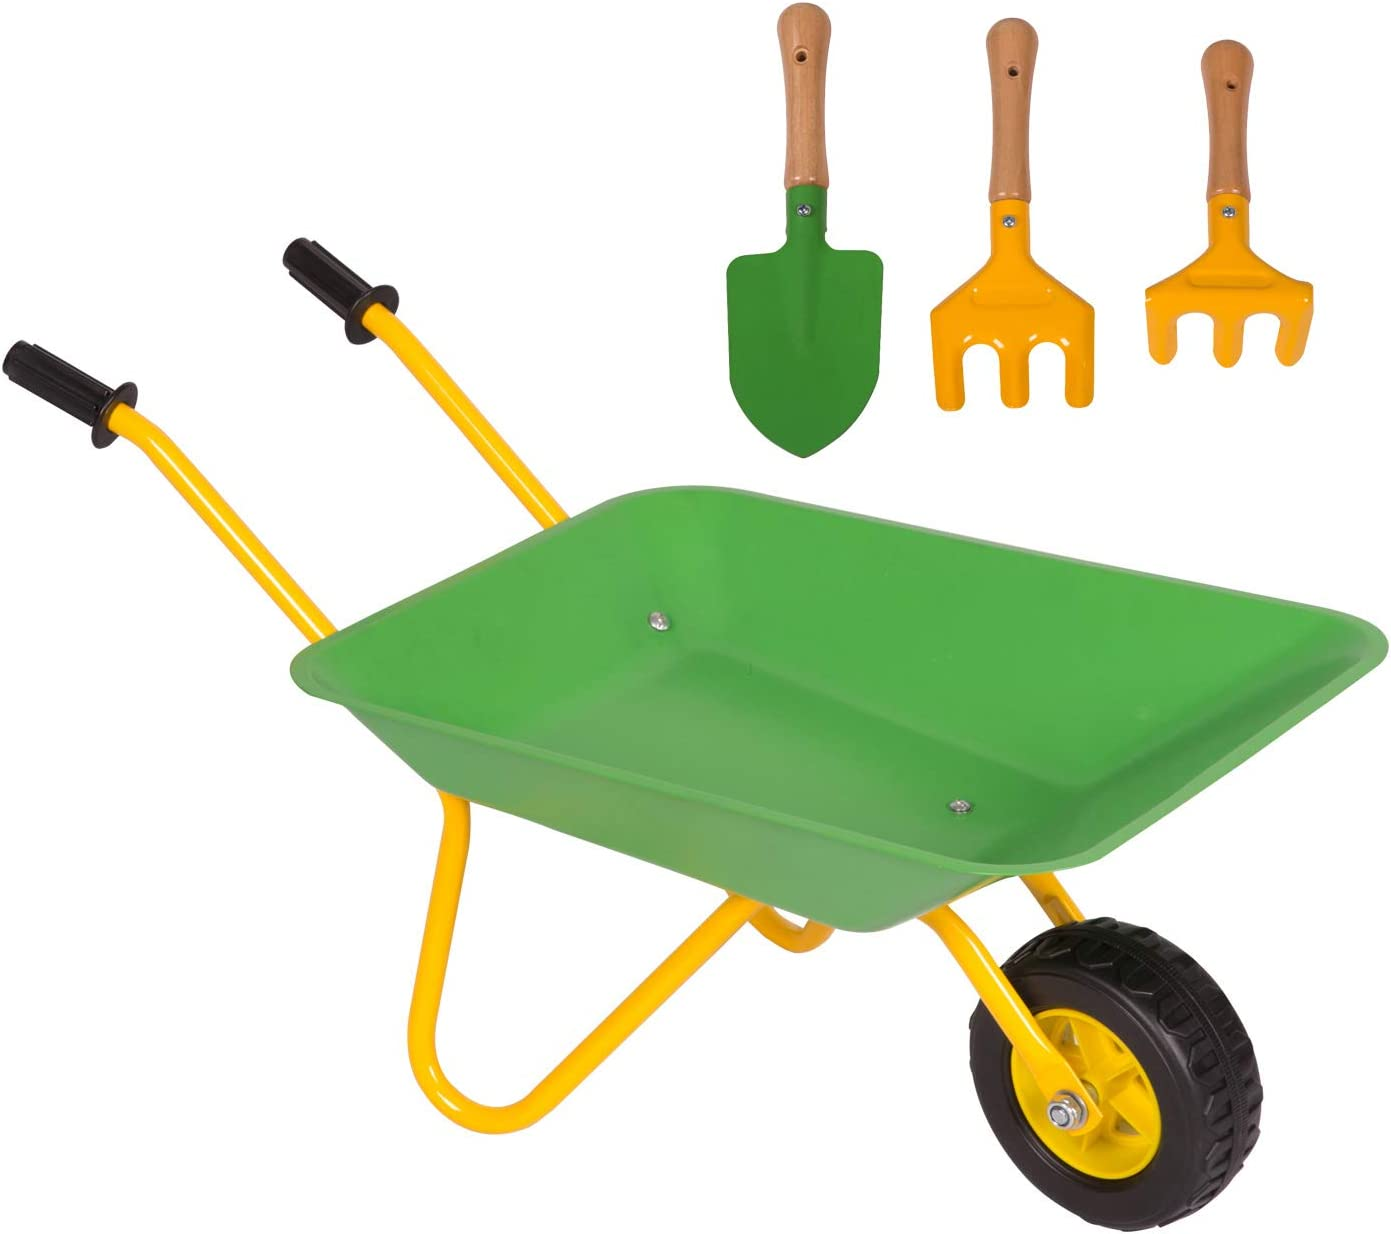 KINTNESS Kids Wheelbarrow Outdoor Kids Toy Wheelbarrow Play Tool for for Boys and Girls Metal Construction Toys Kart w/Steel Tray and Rubber Hand Grips : Toys & Games